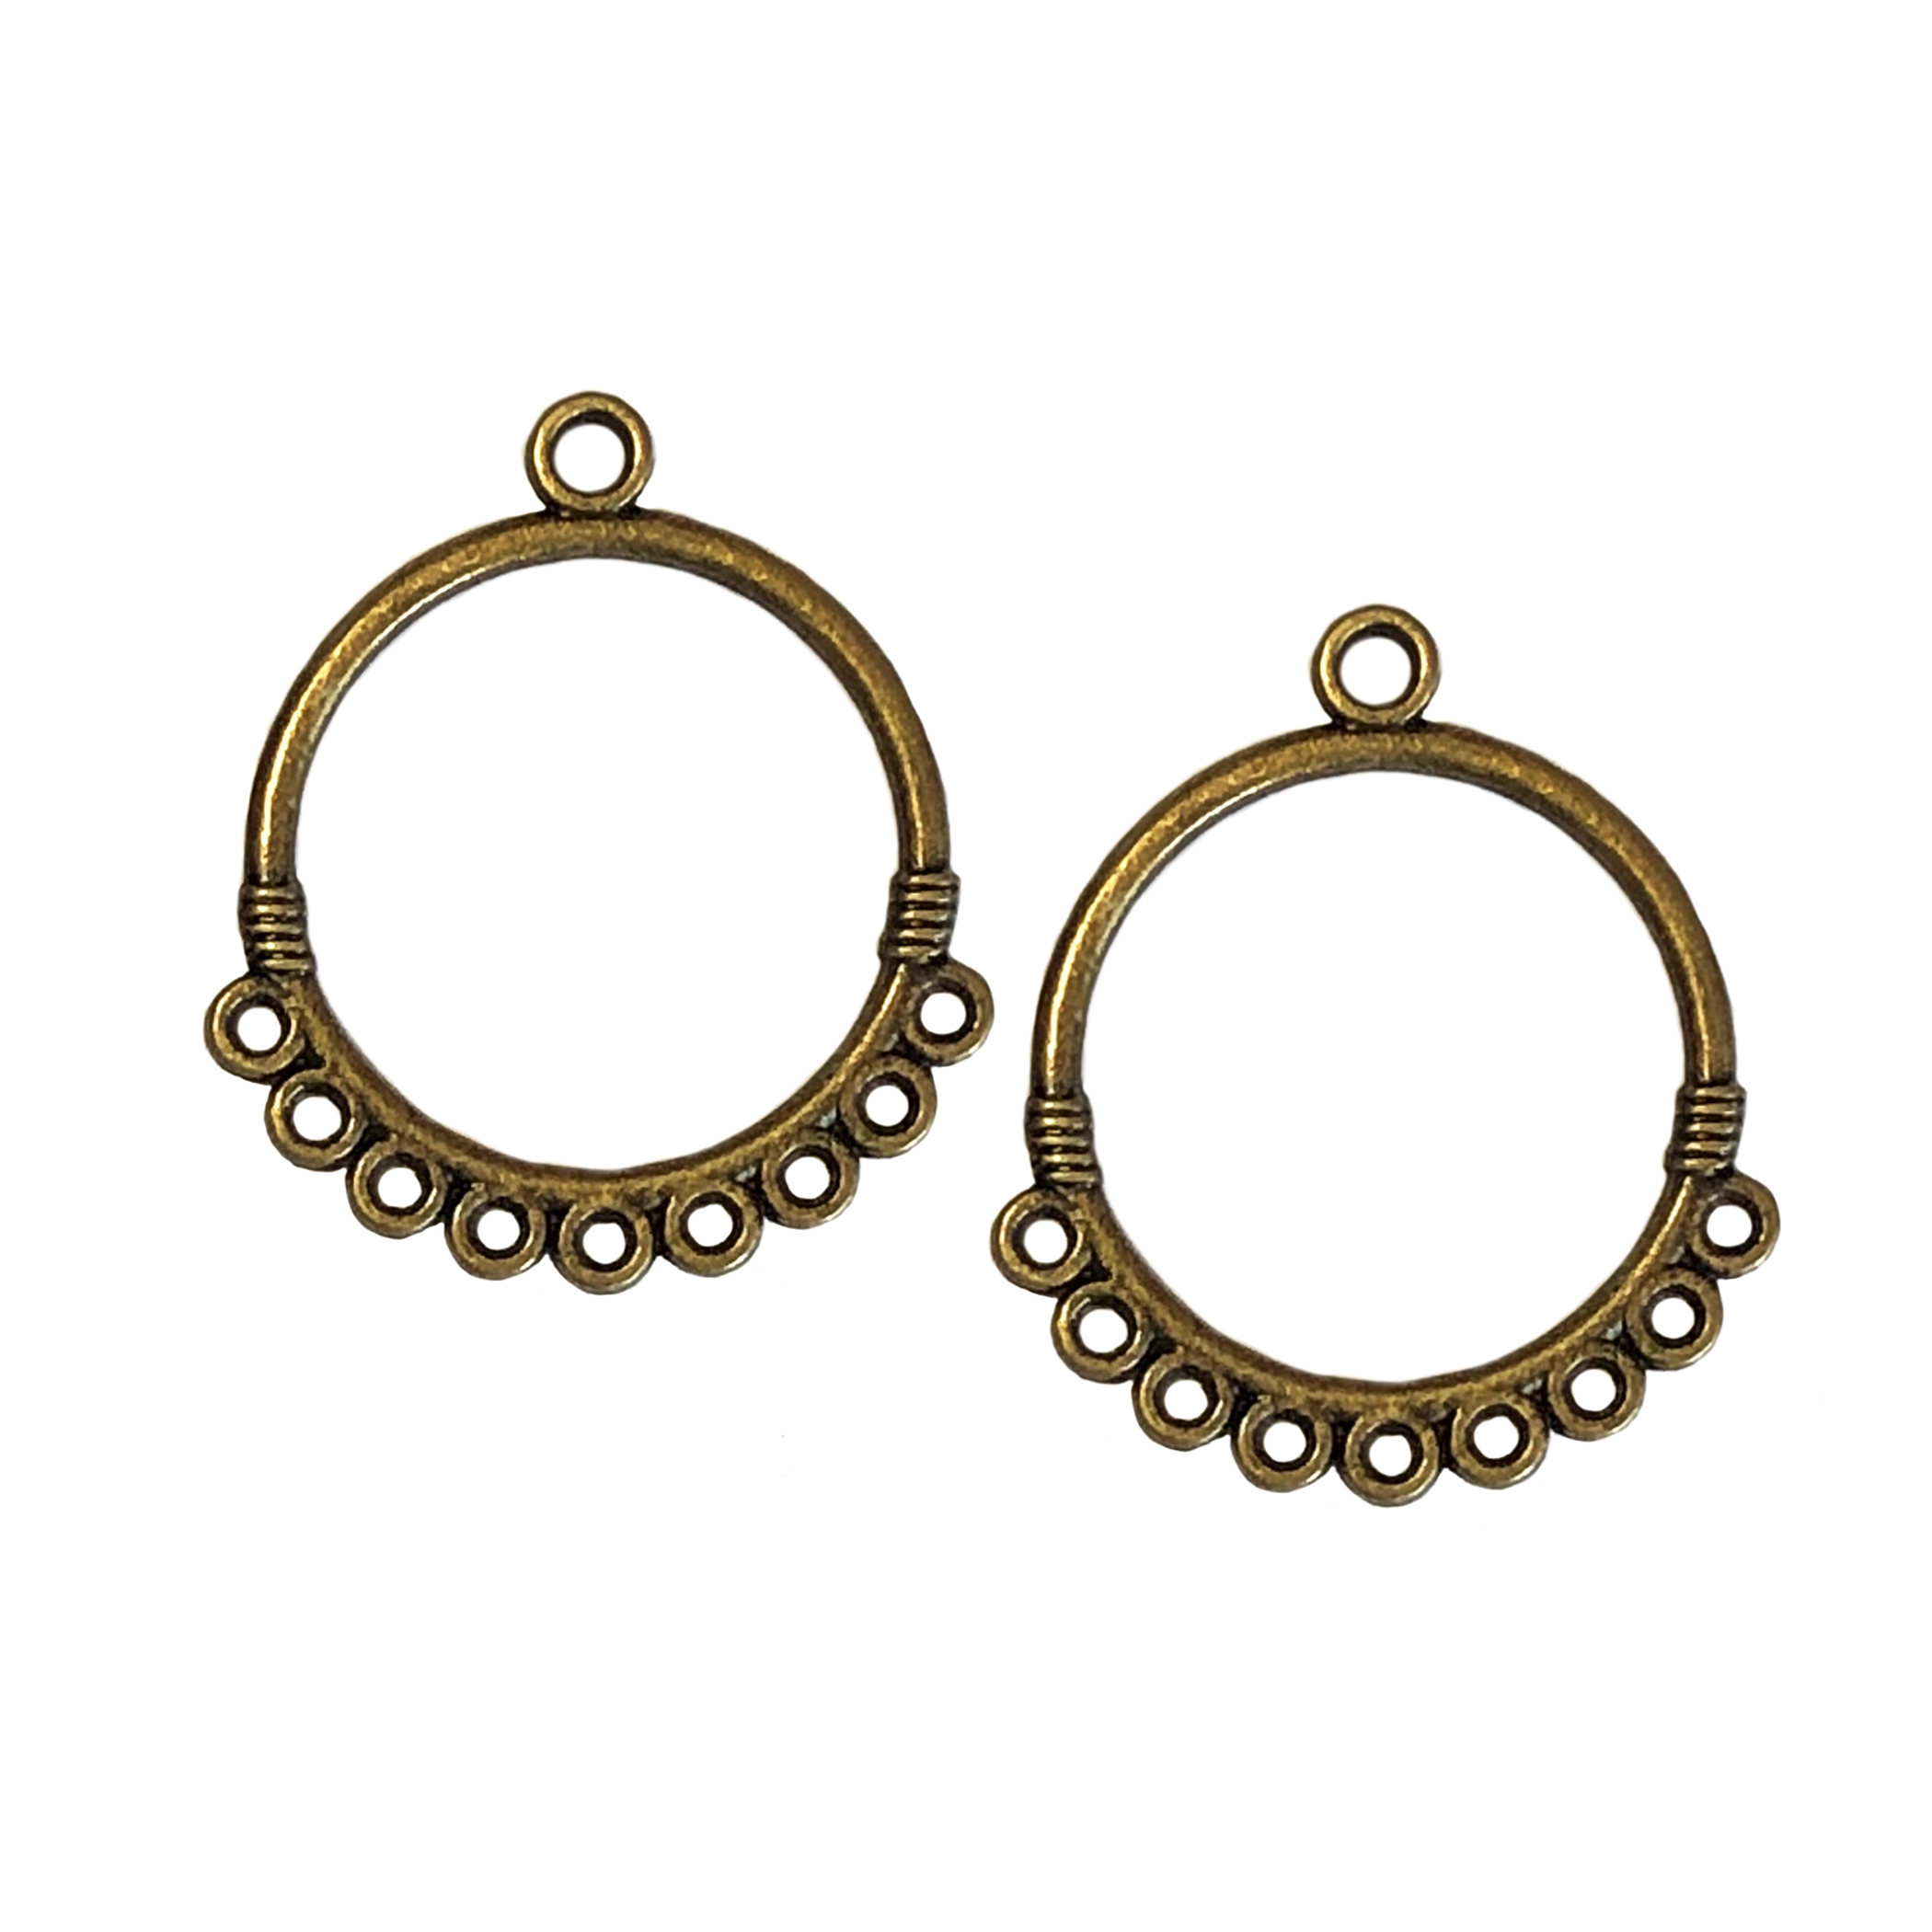 gypsy style ear drop, circle hoops, antique bronze, earrings, bronze, ear drops, circle design, bronze ear drops, gypsy earrings, chandelier earrings, jewelry making, jewelry supplies, B'sue Boutiques, ear drops, 33x29mm, jewelry earrings, 0314